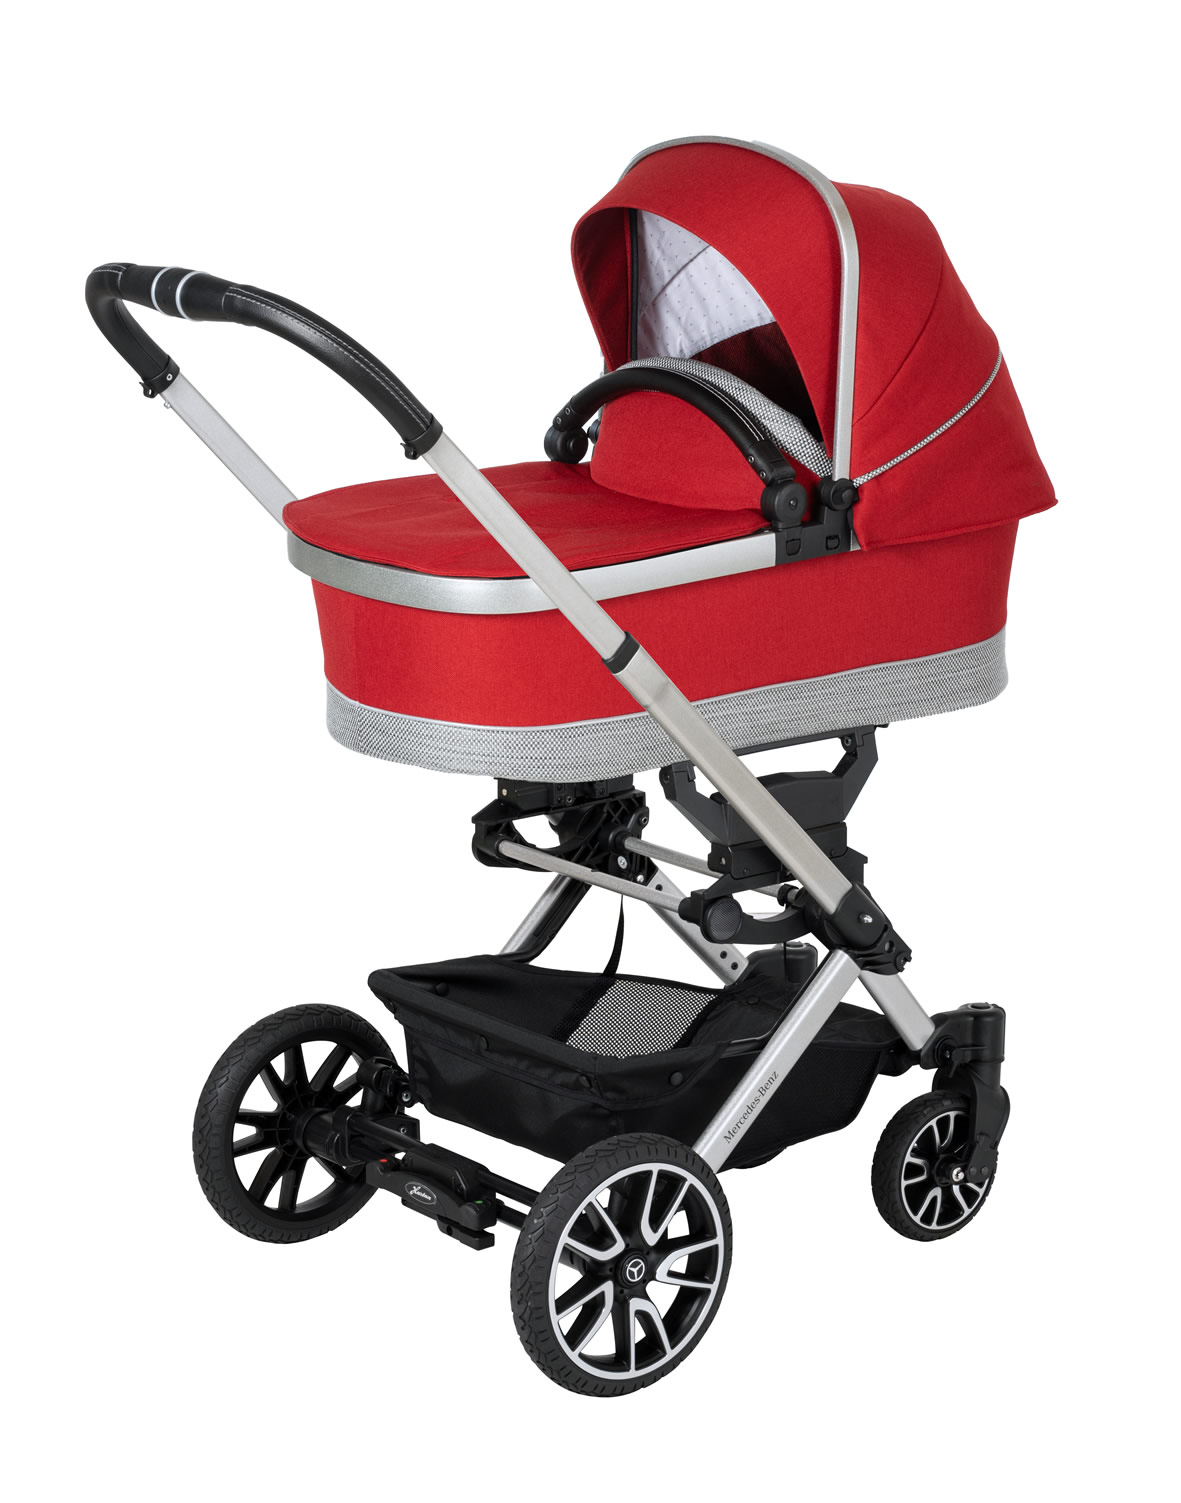 Hartan Mercedes-Benz stroller and carrycot in Hyacinth